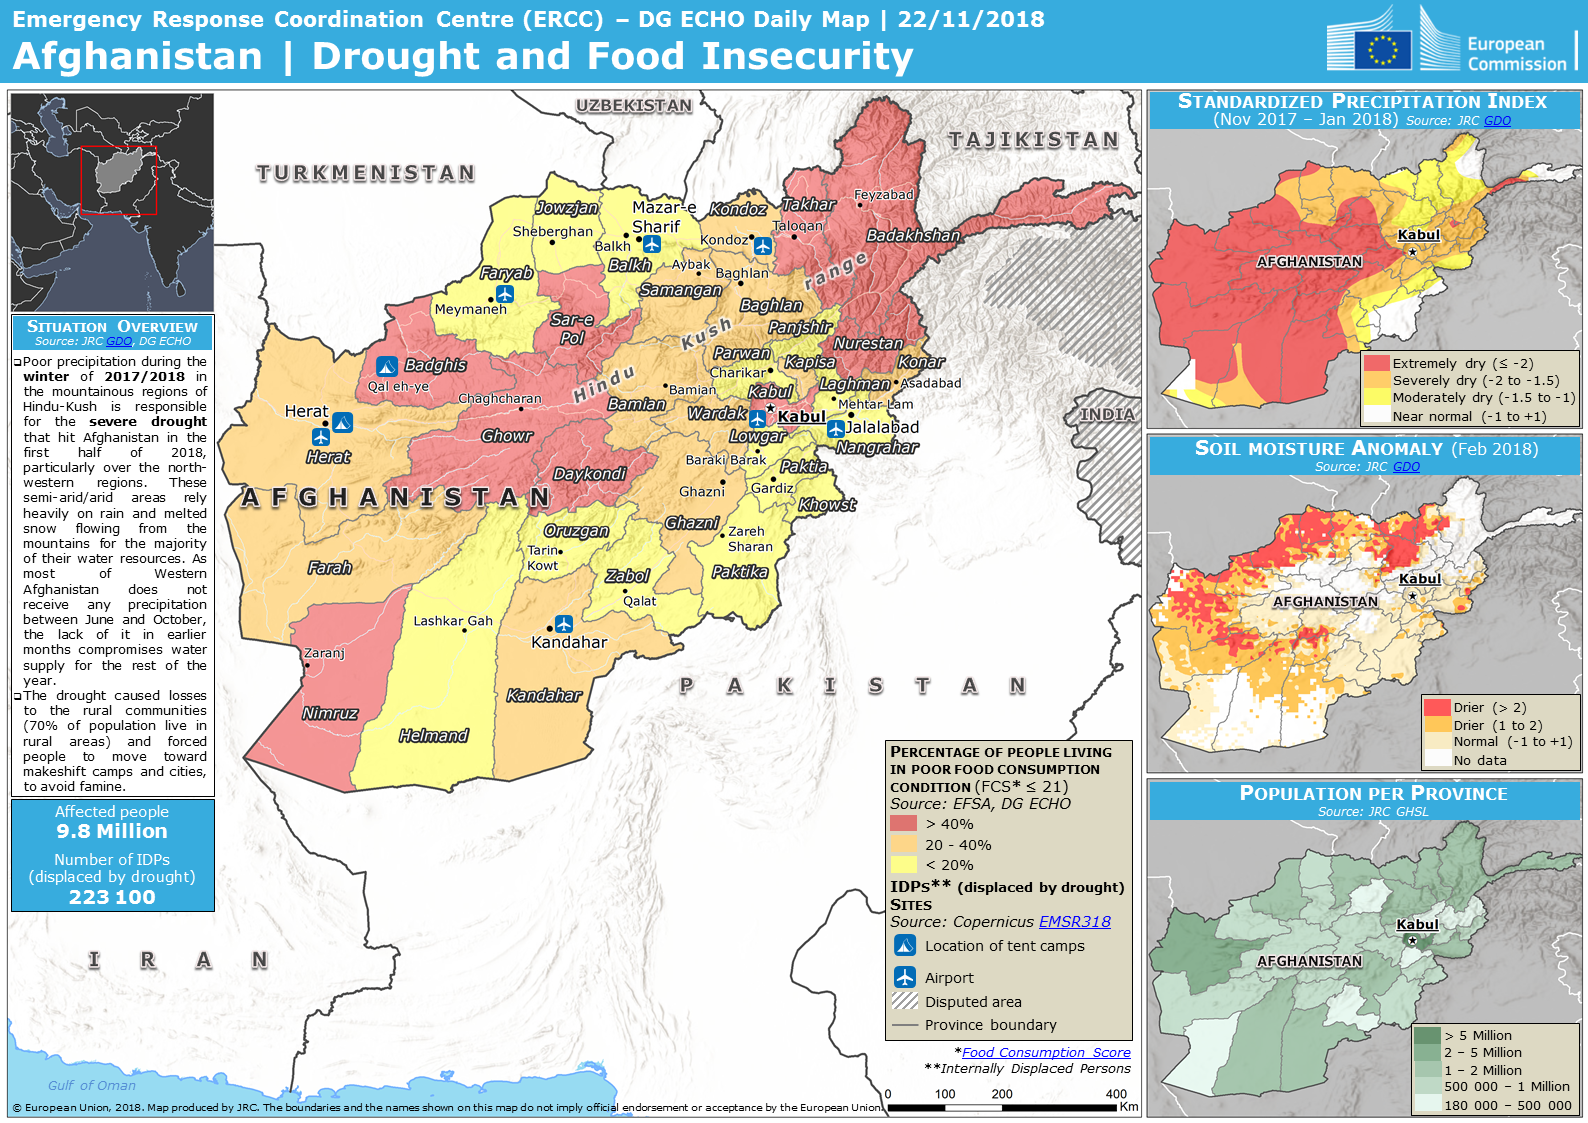 Overall Red Drought alert for Afghanistan-Balochistan-2018 in